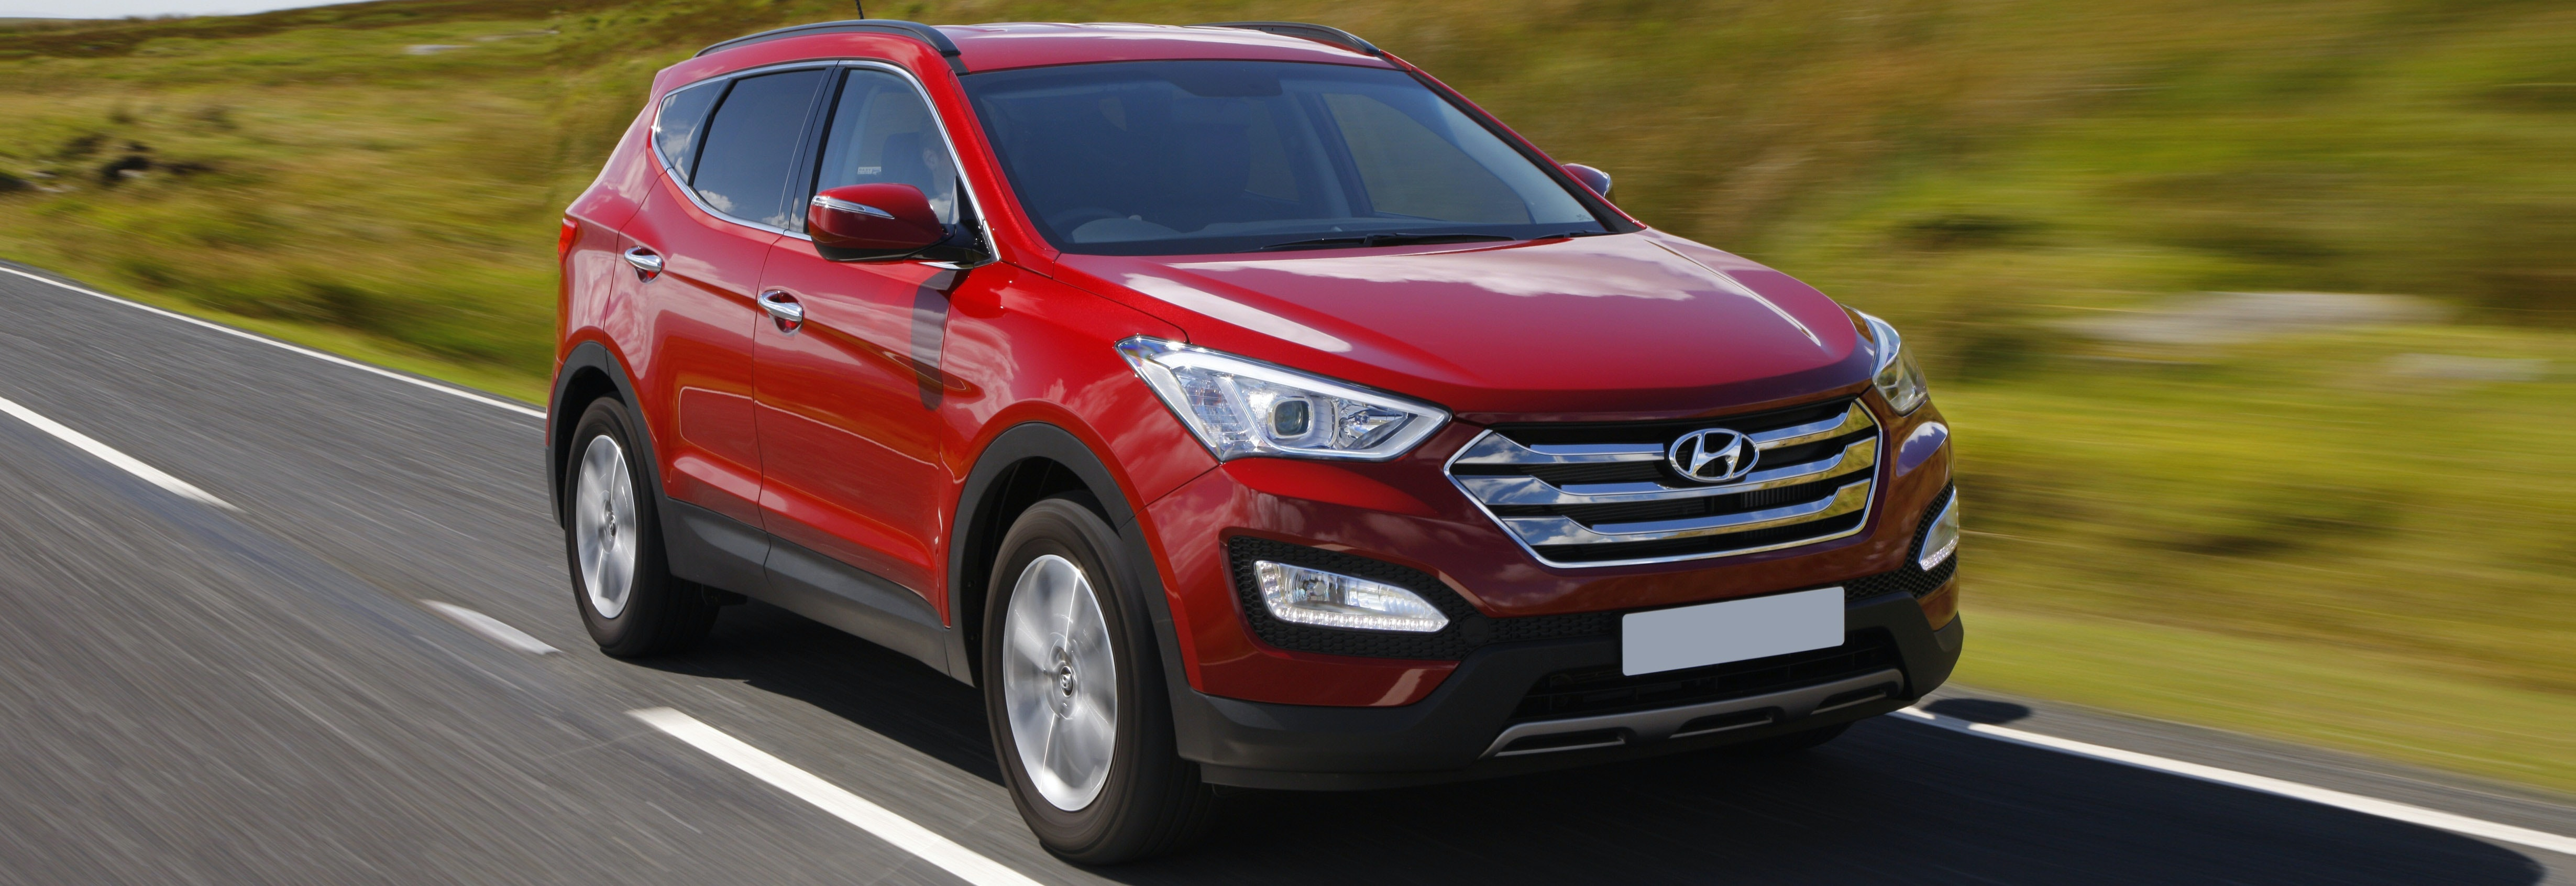 Red Hyundai Santa Fe driving, viewed from the front